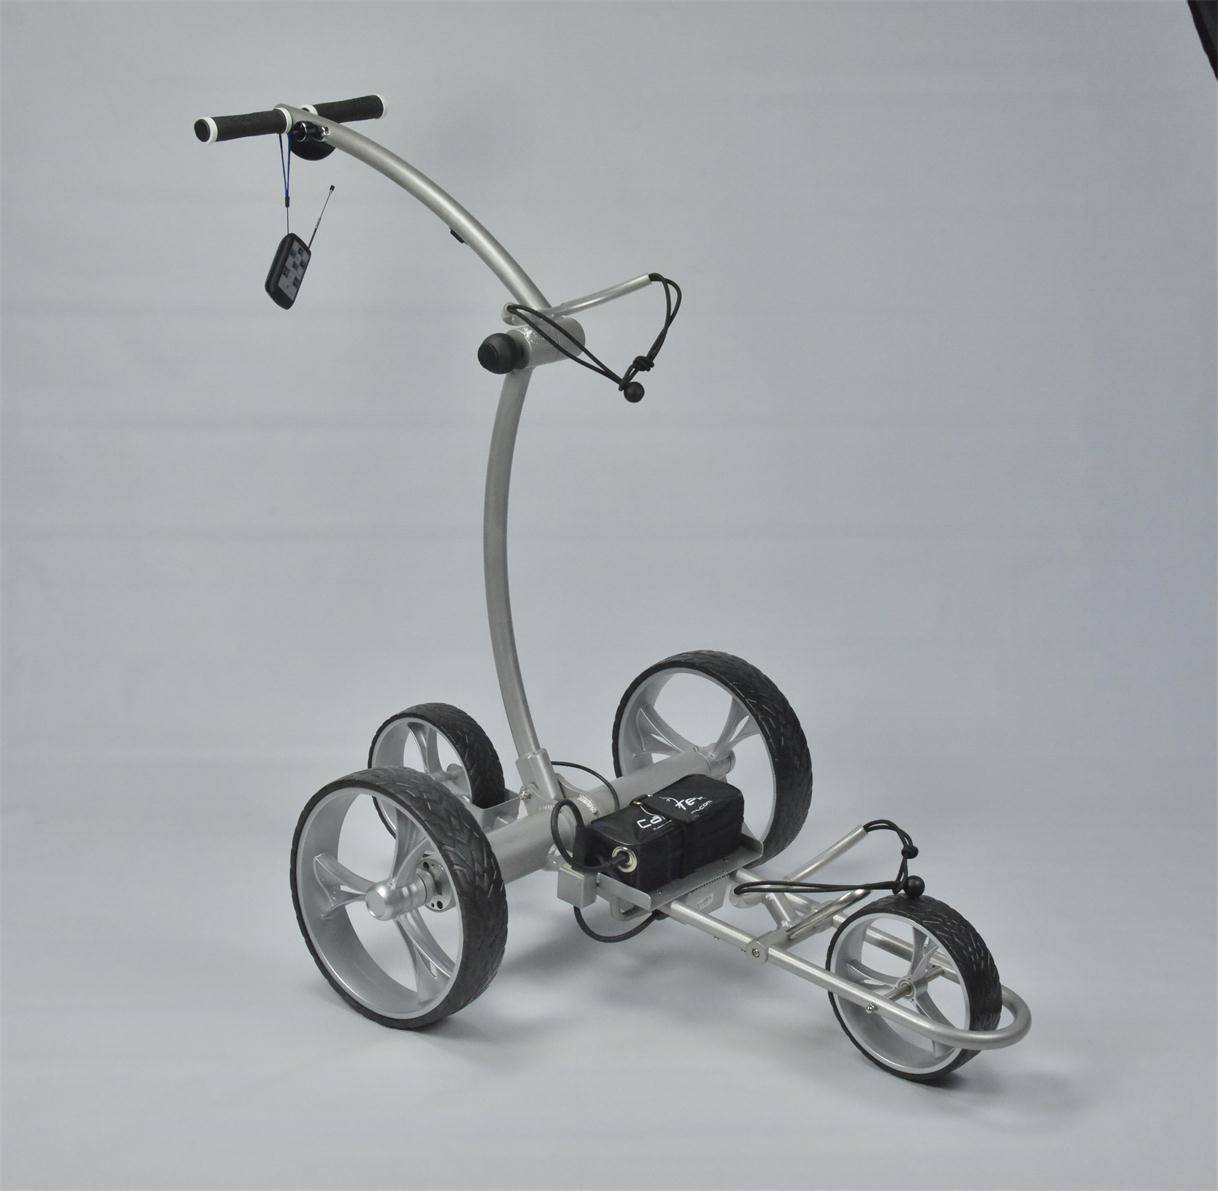 MC303RS remote control golf trolley